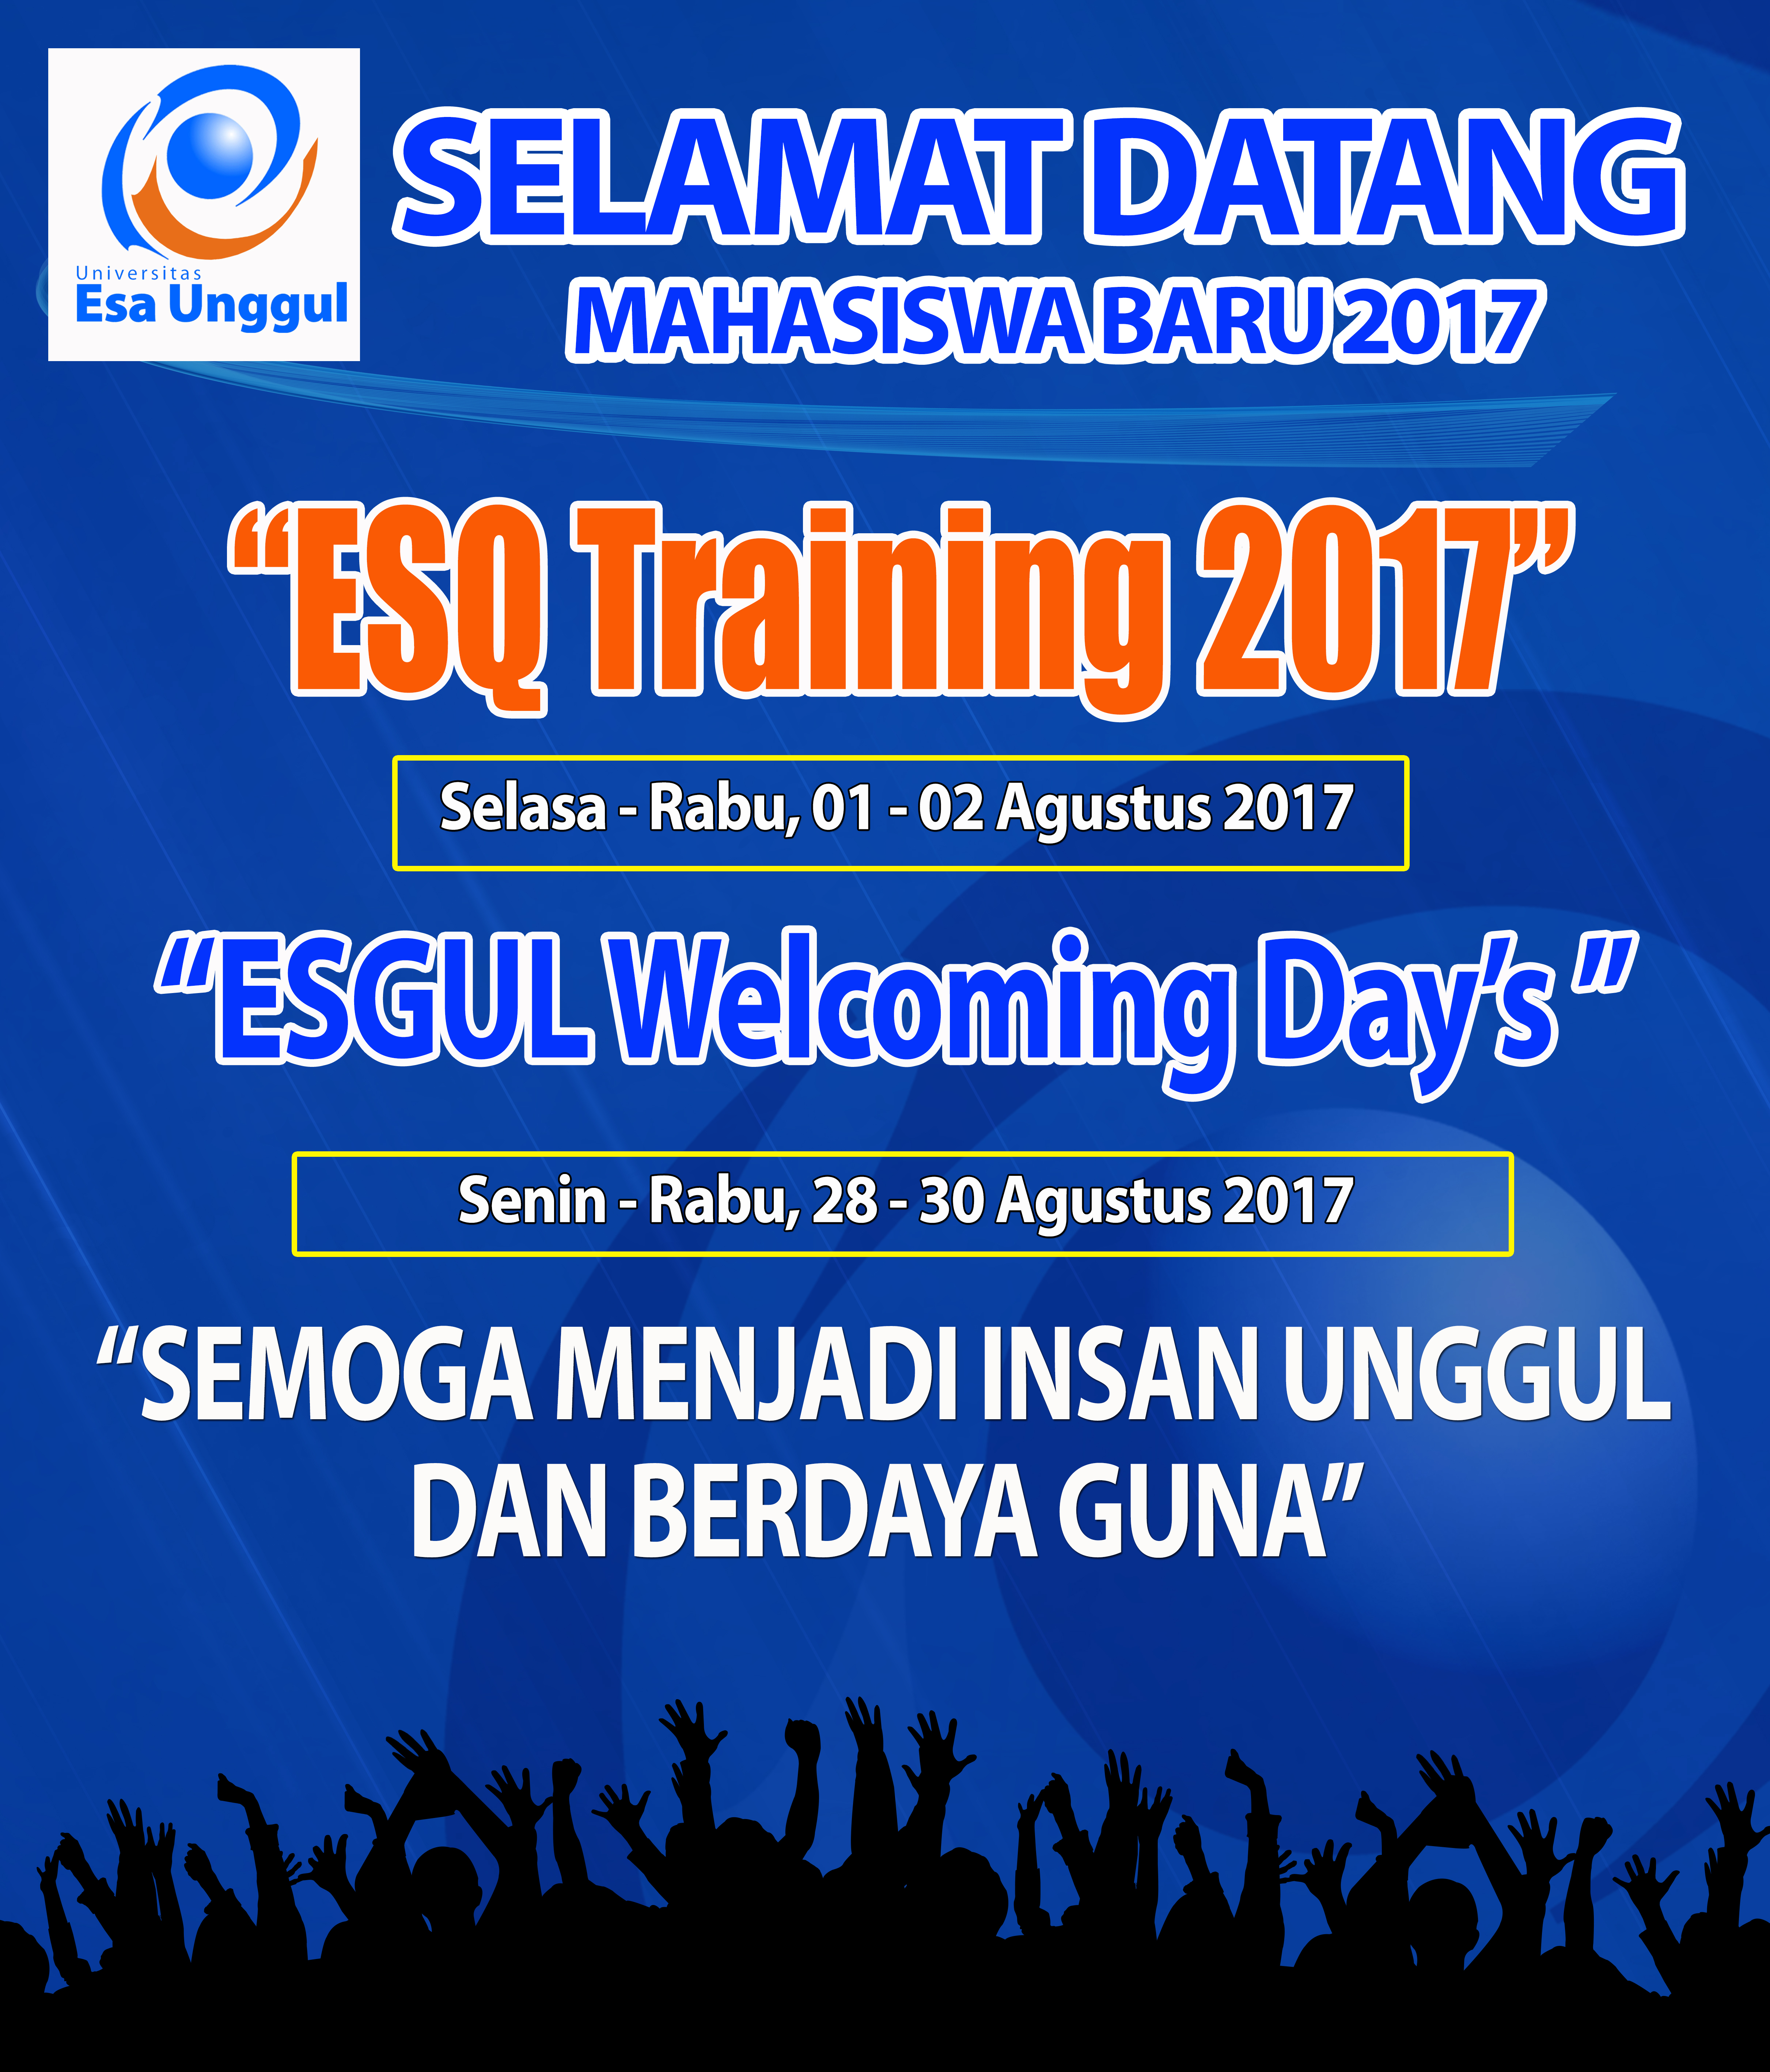 Esa Unggul Welcoming Day Mahasiswa Baru 2017